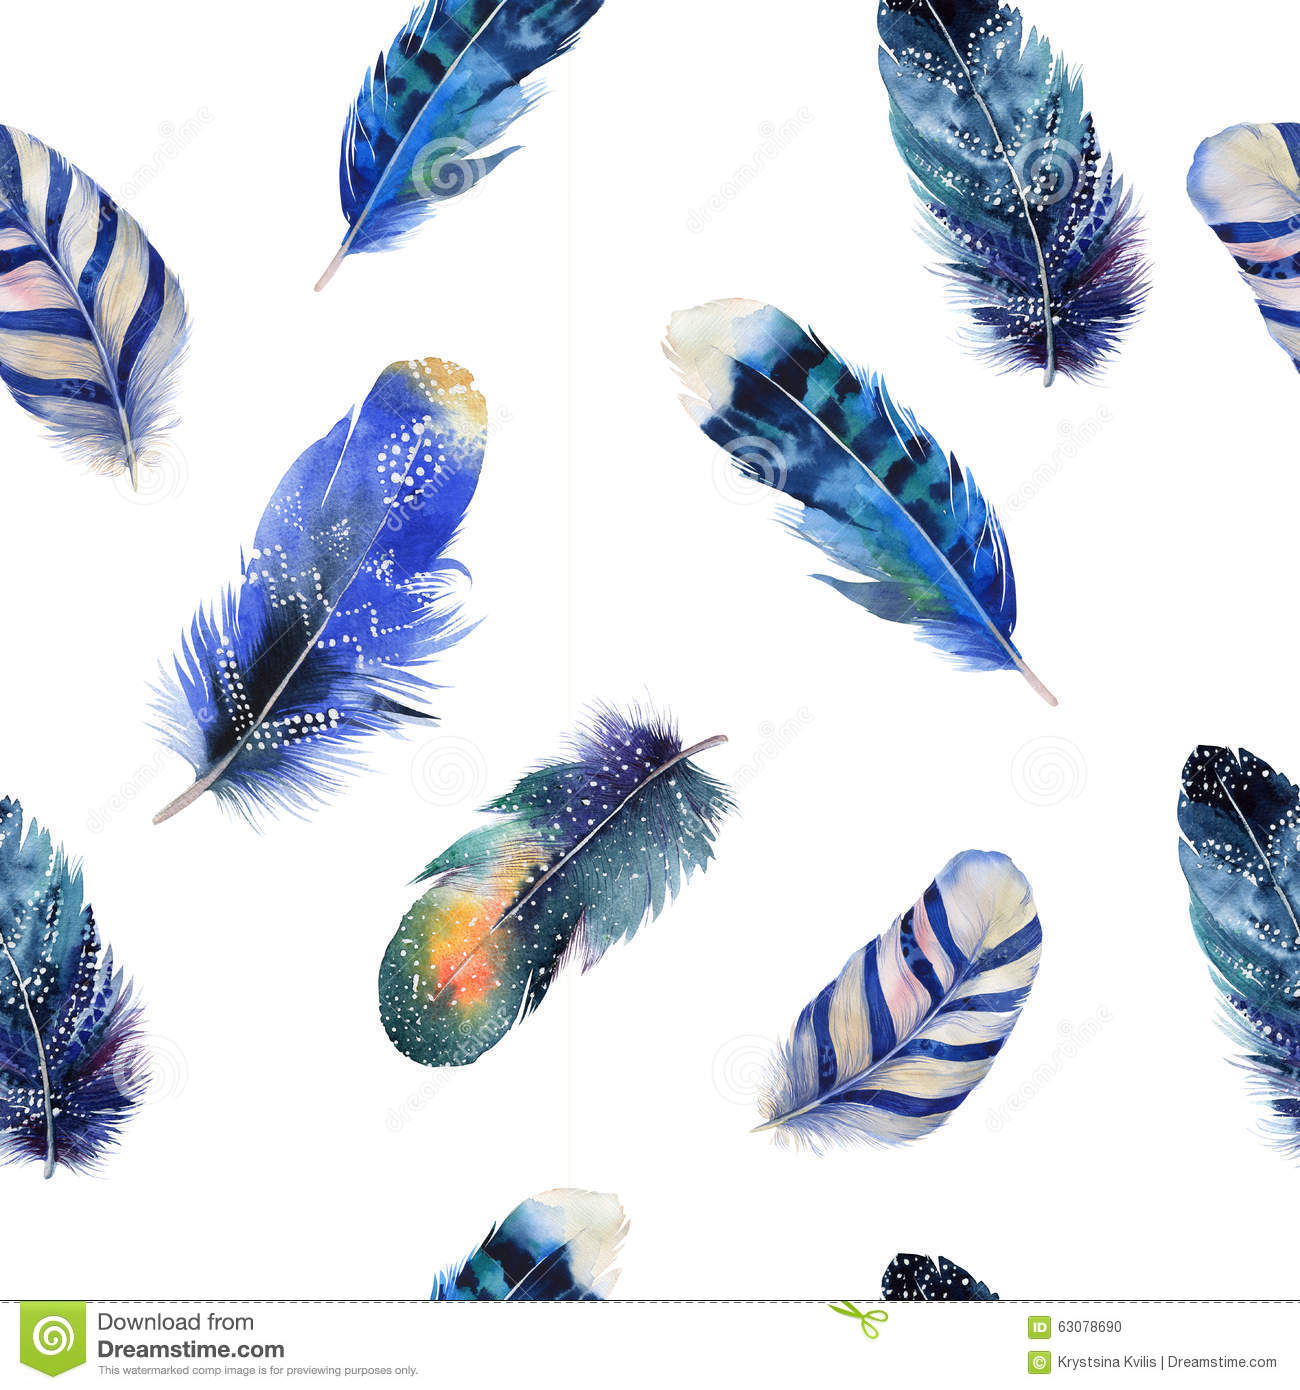 watercolor birds feathers boho pattern seamless stock illustrations